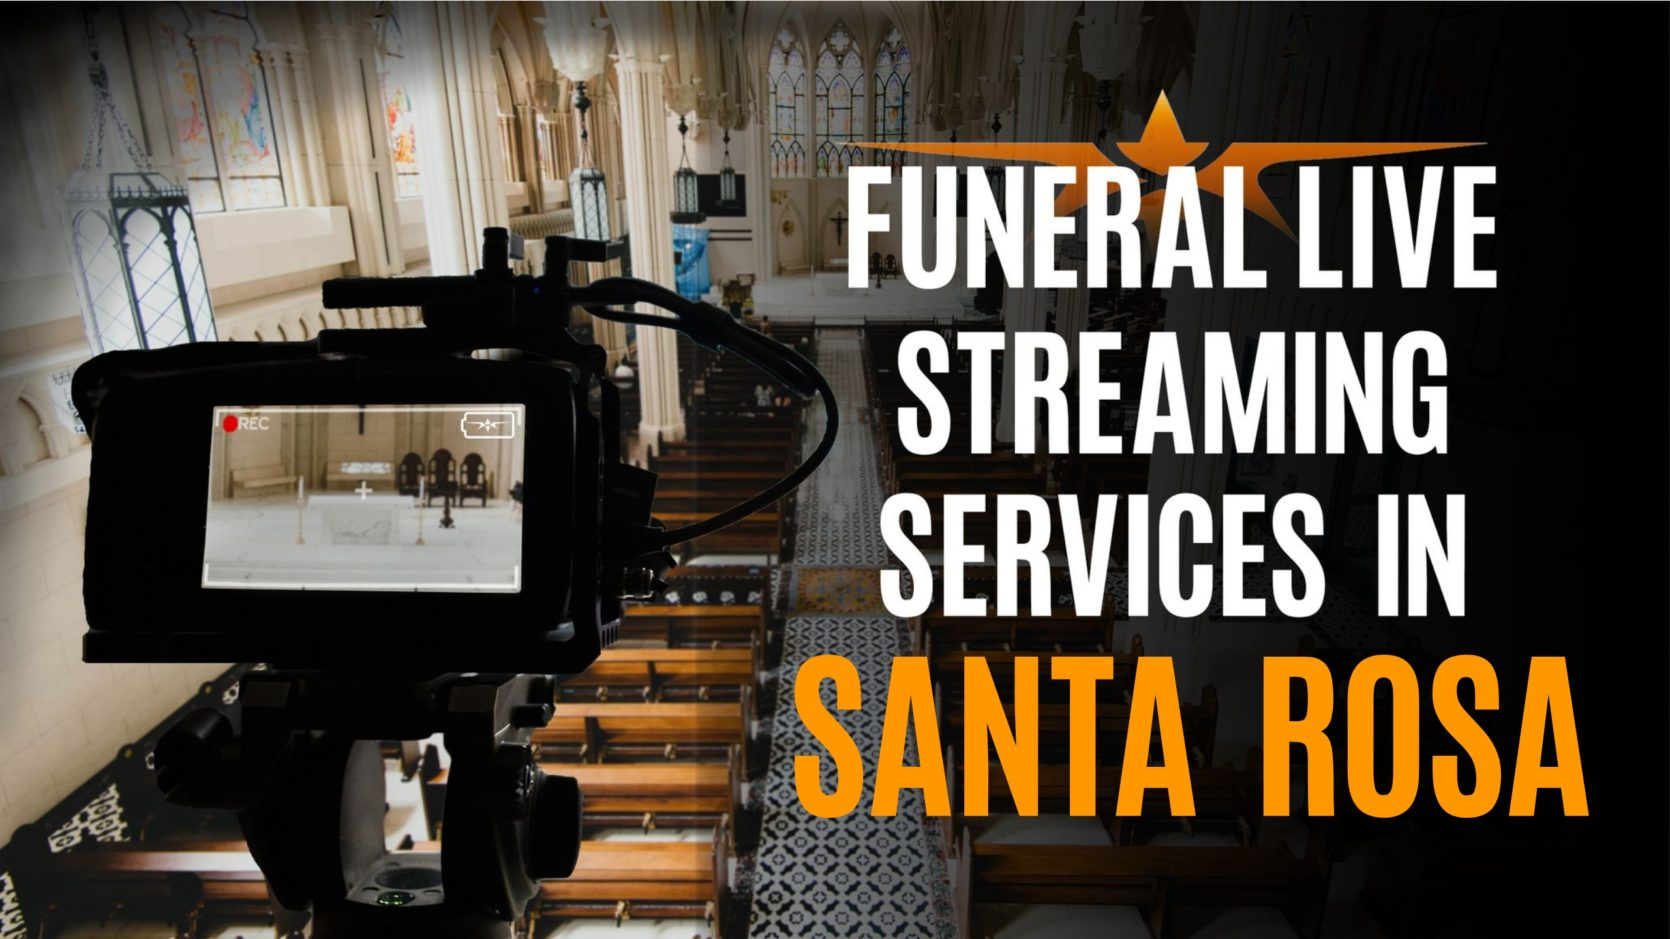 Funeral Live Streaming Services in Santa Rosa